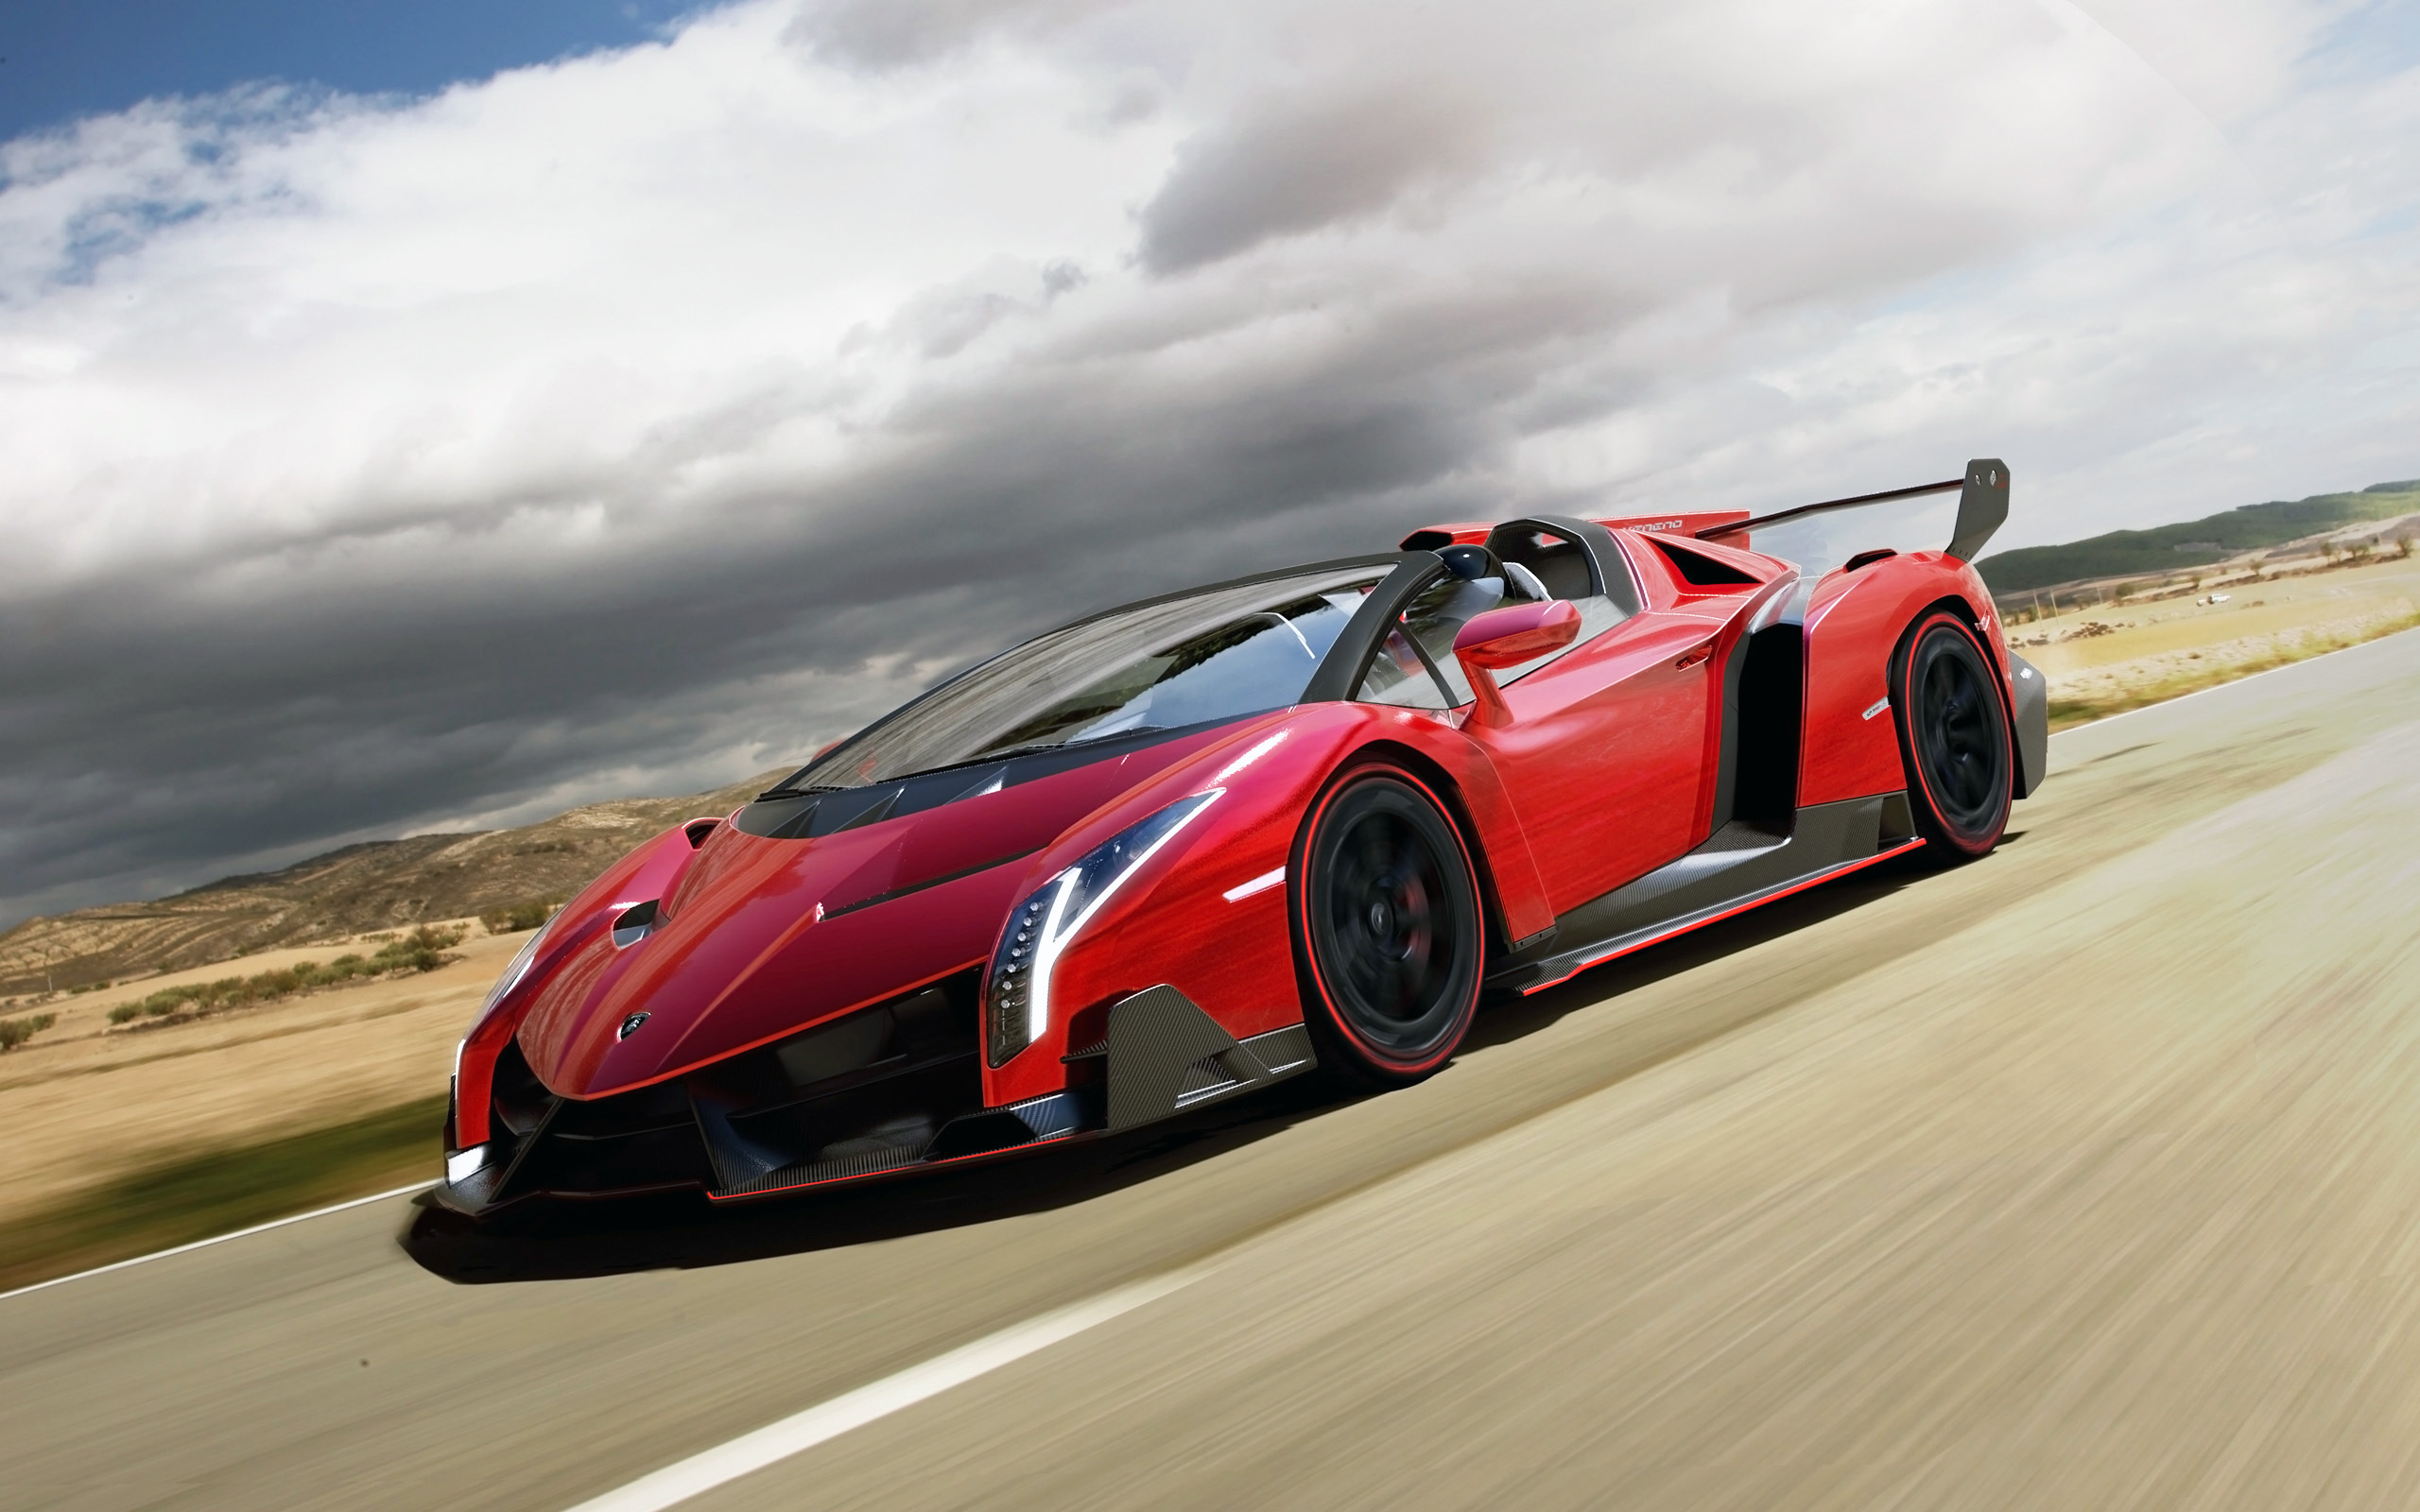 2014 Lamborghini Veneno Roadster Wallpaper